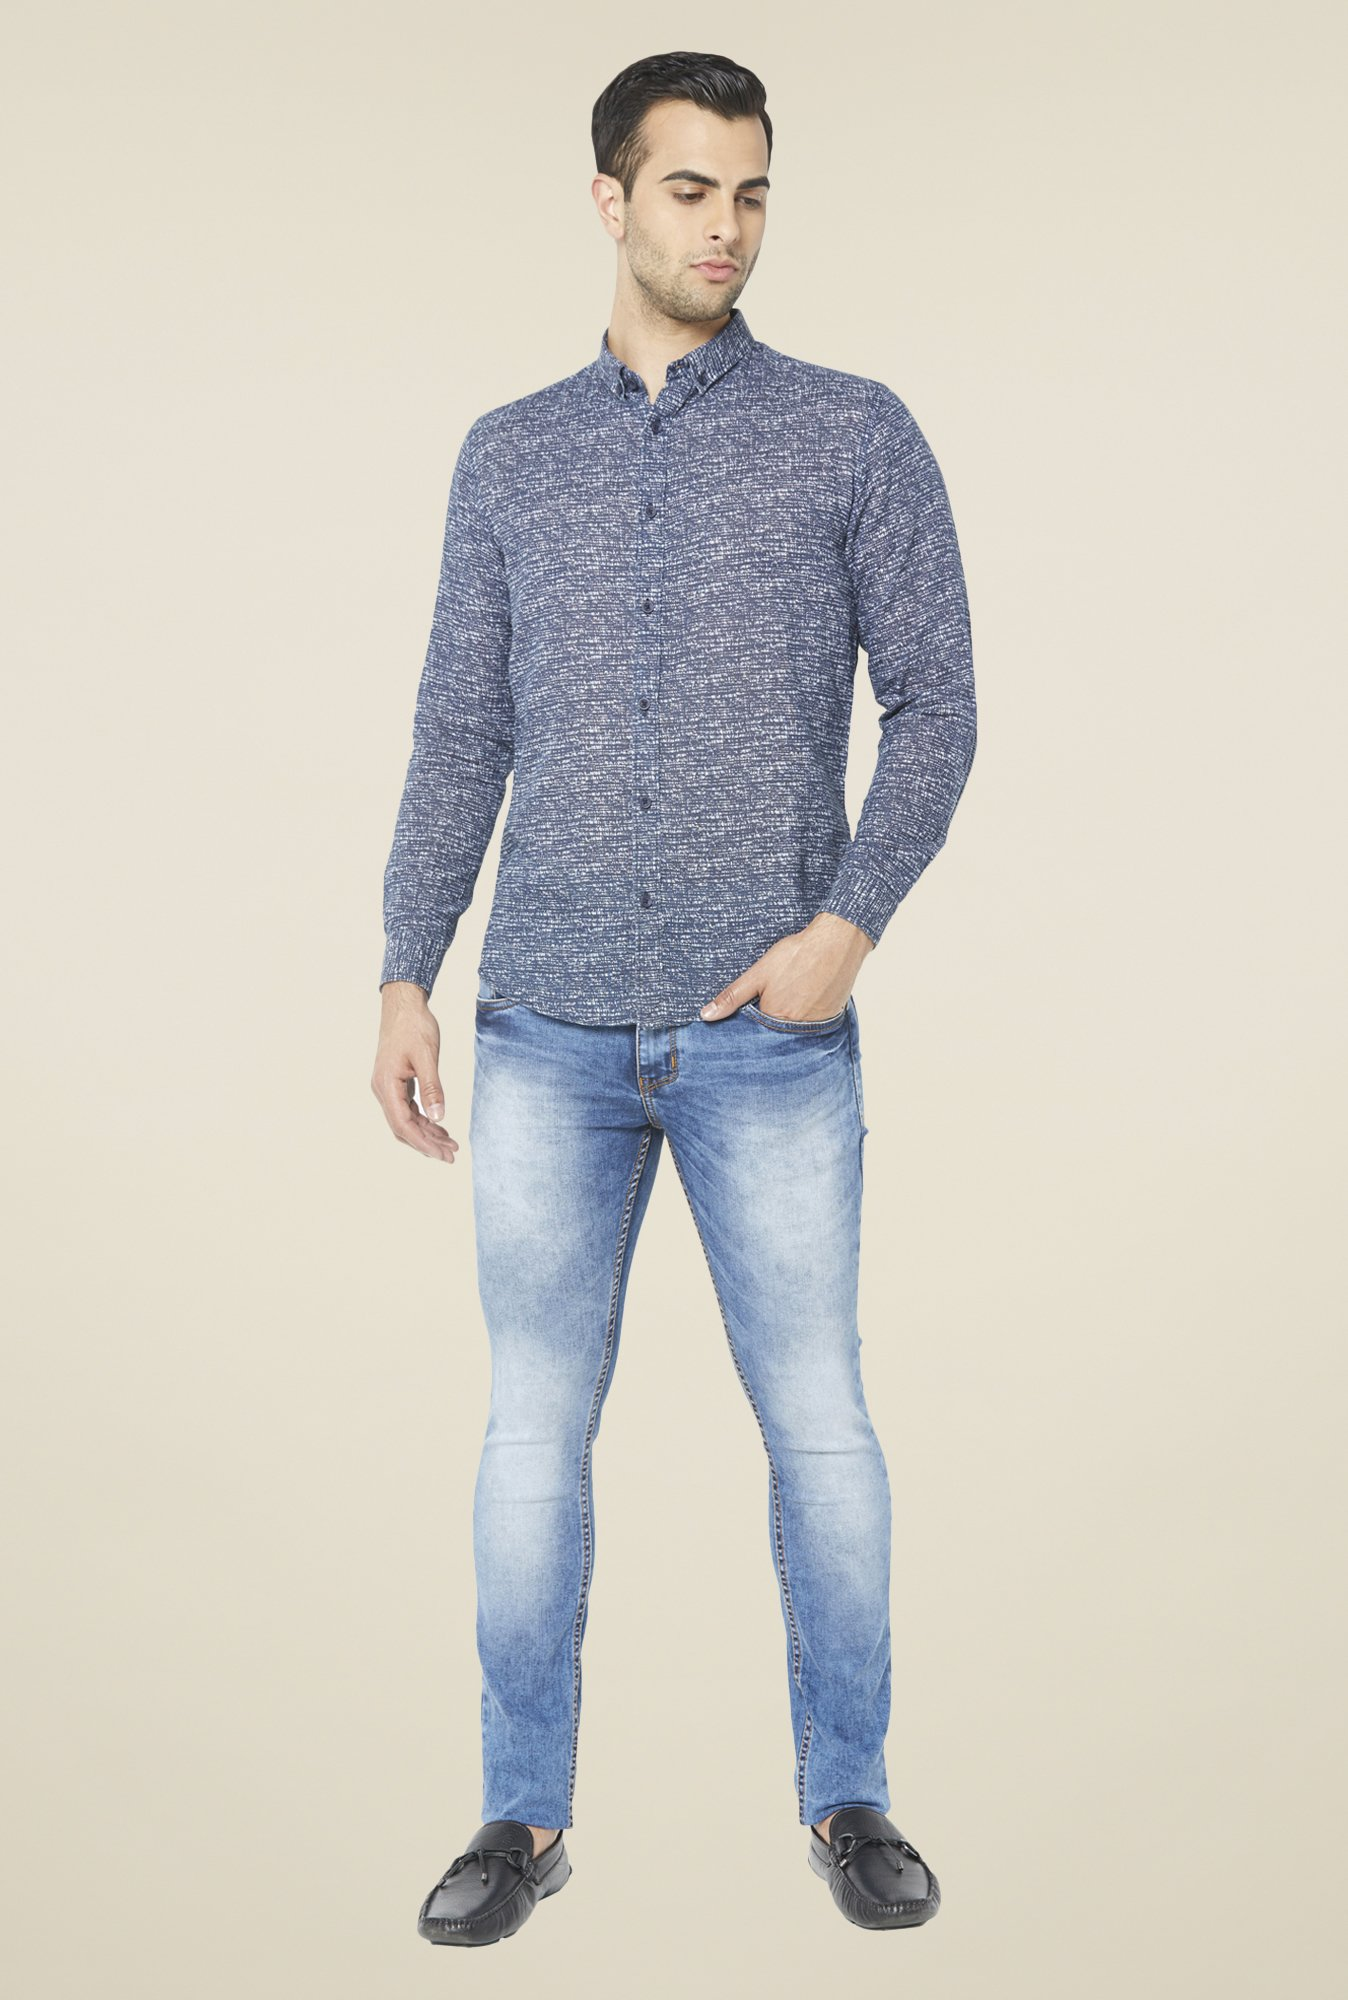 Globus Blue Printed Shirt